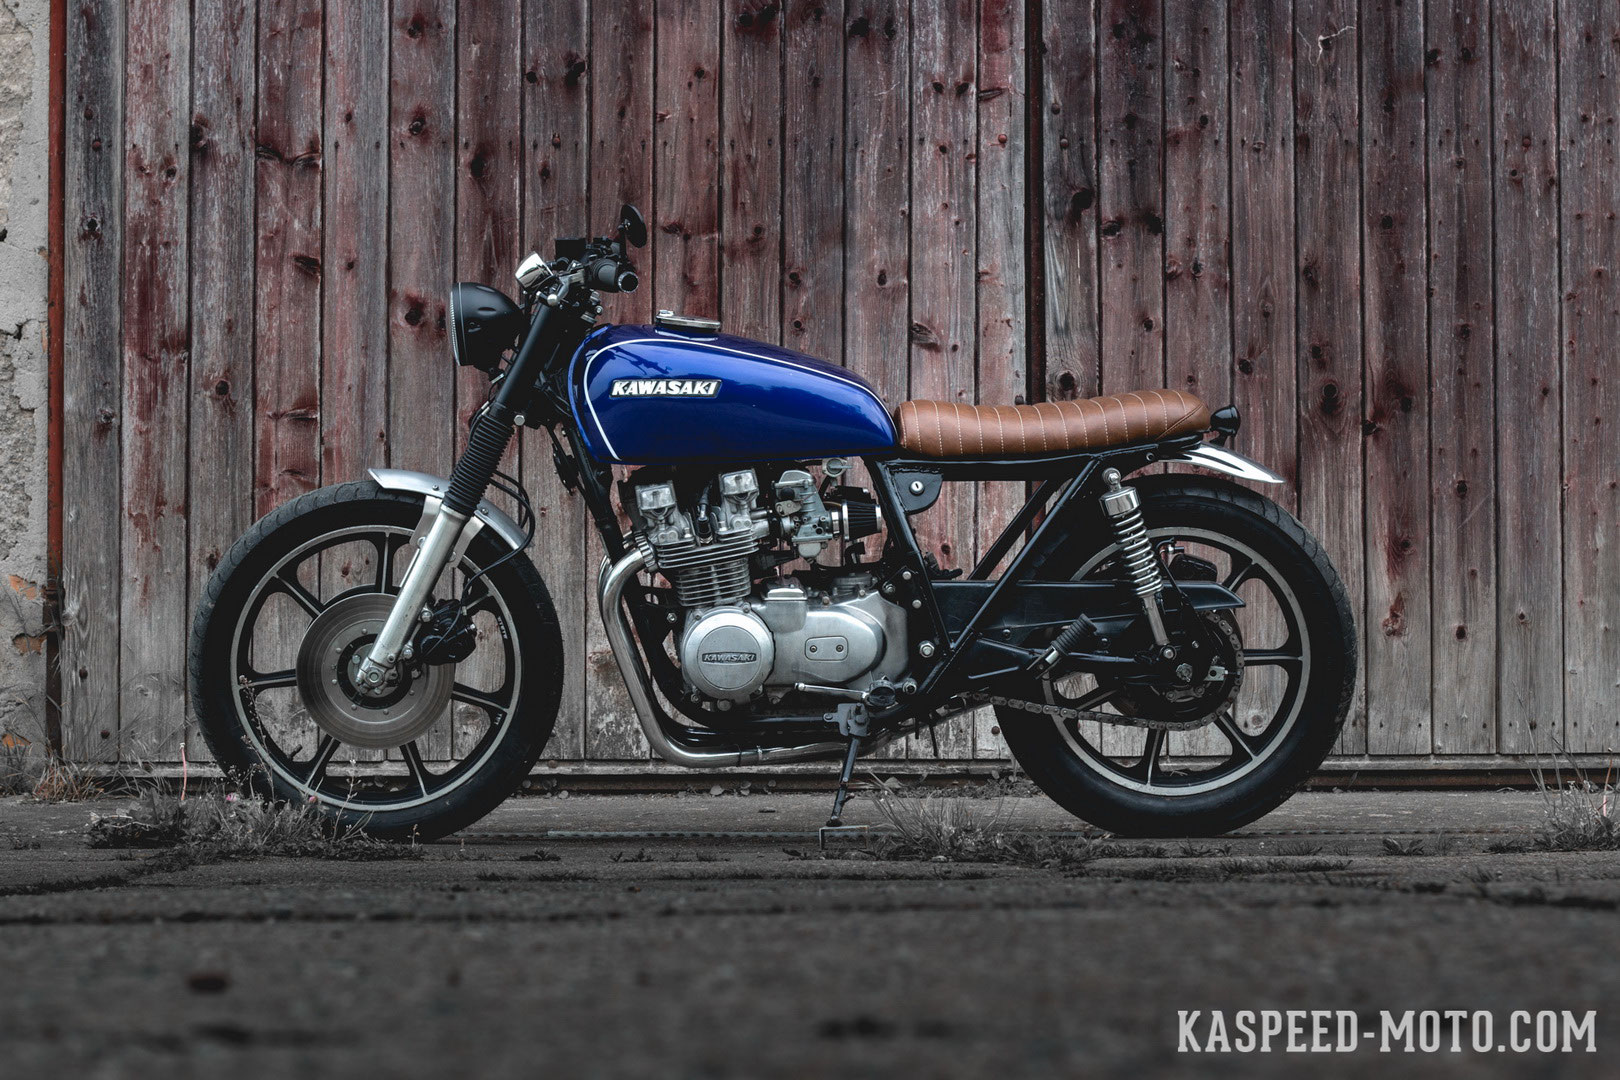 Kawasaki Z650b Kaspeed Custom Motorcycles Cafe Racer